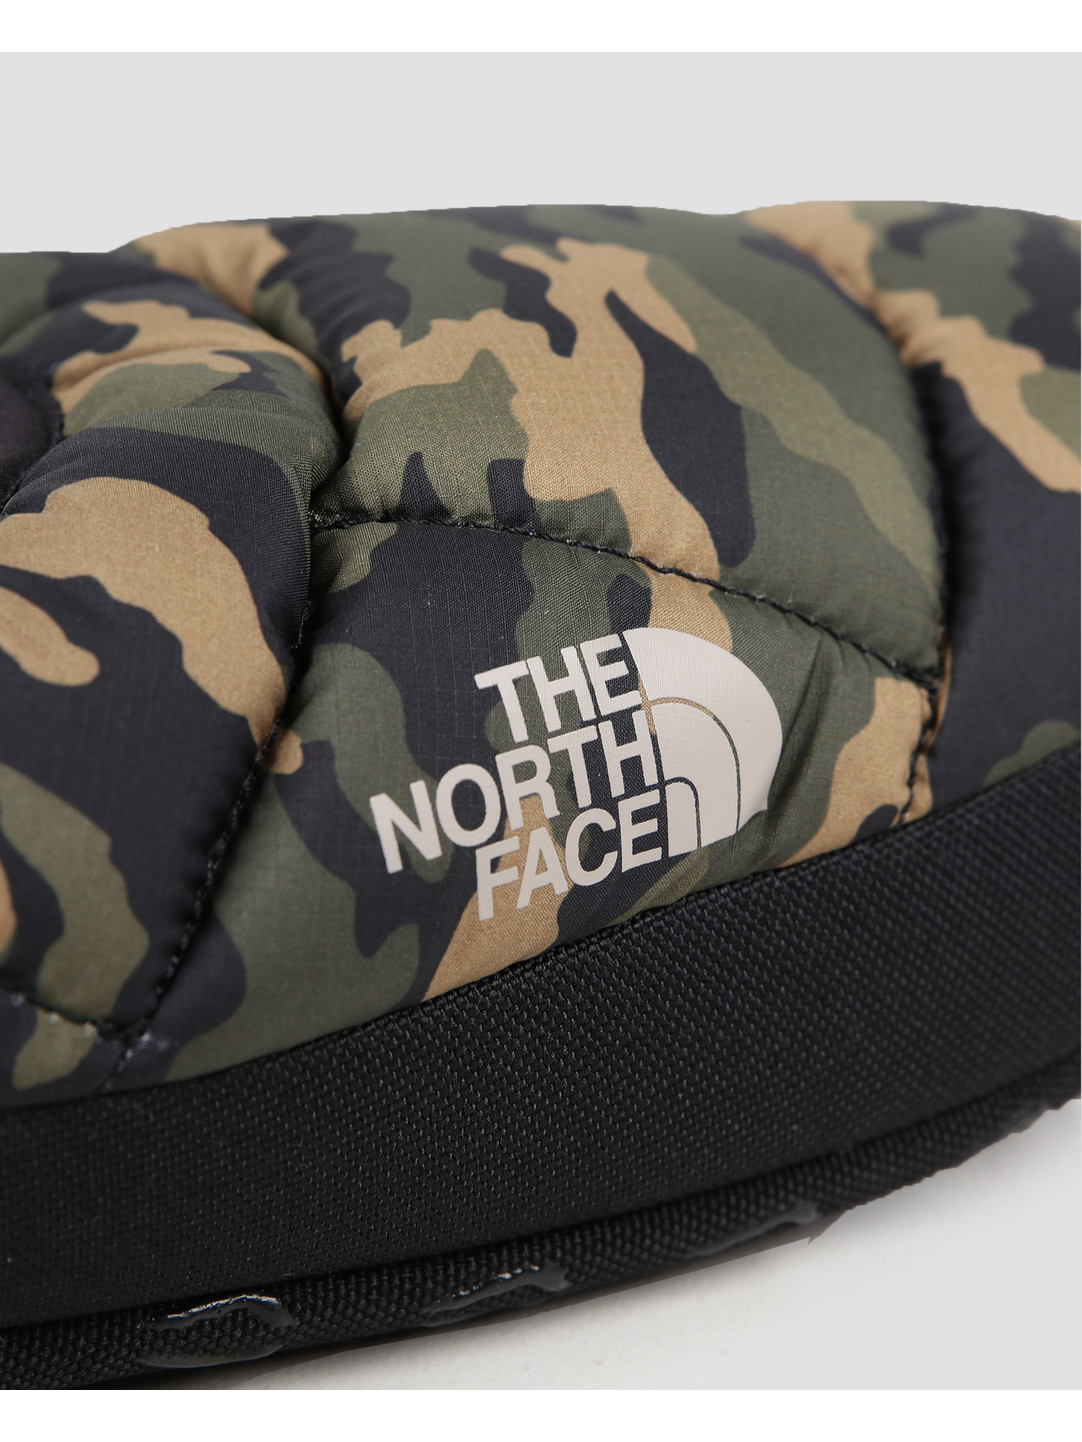 The North Face The North Face NSE Tent Mule III Brown Black T0AWMGFQ3